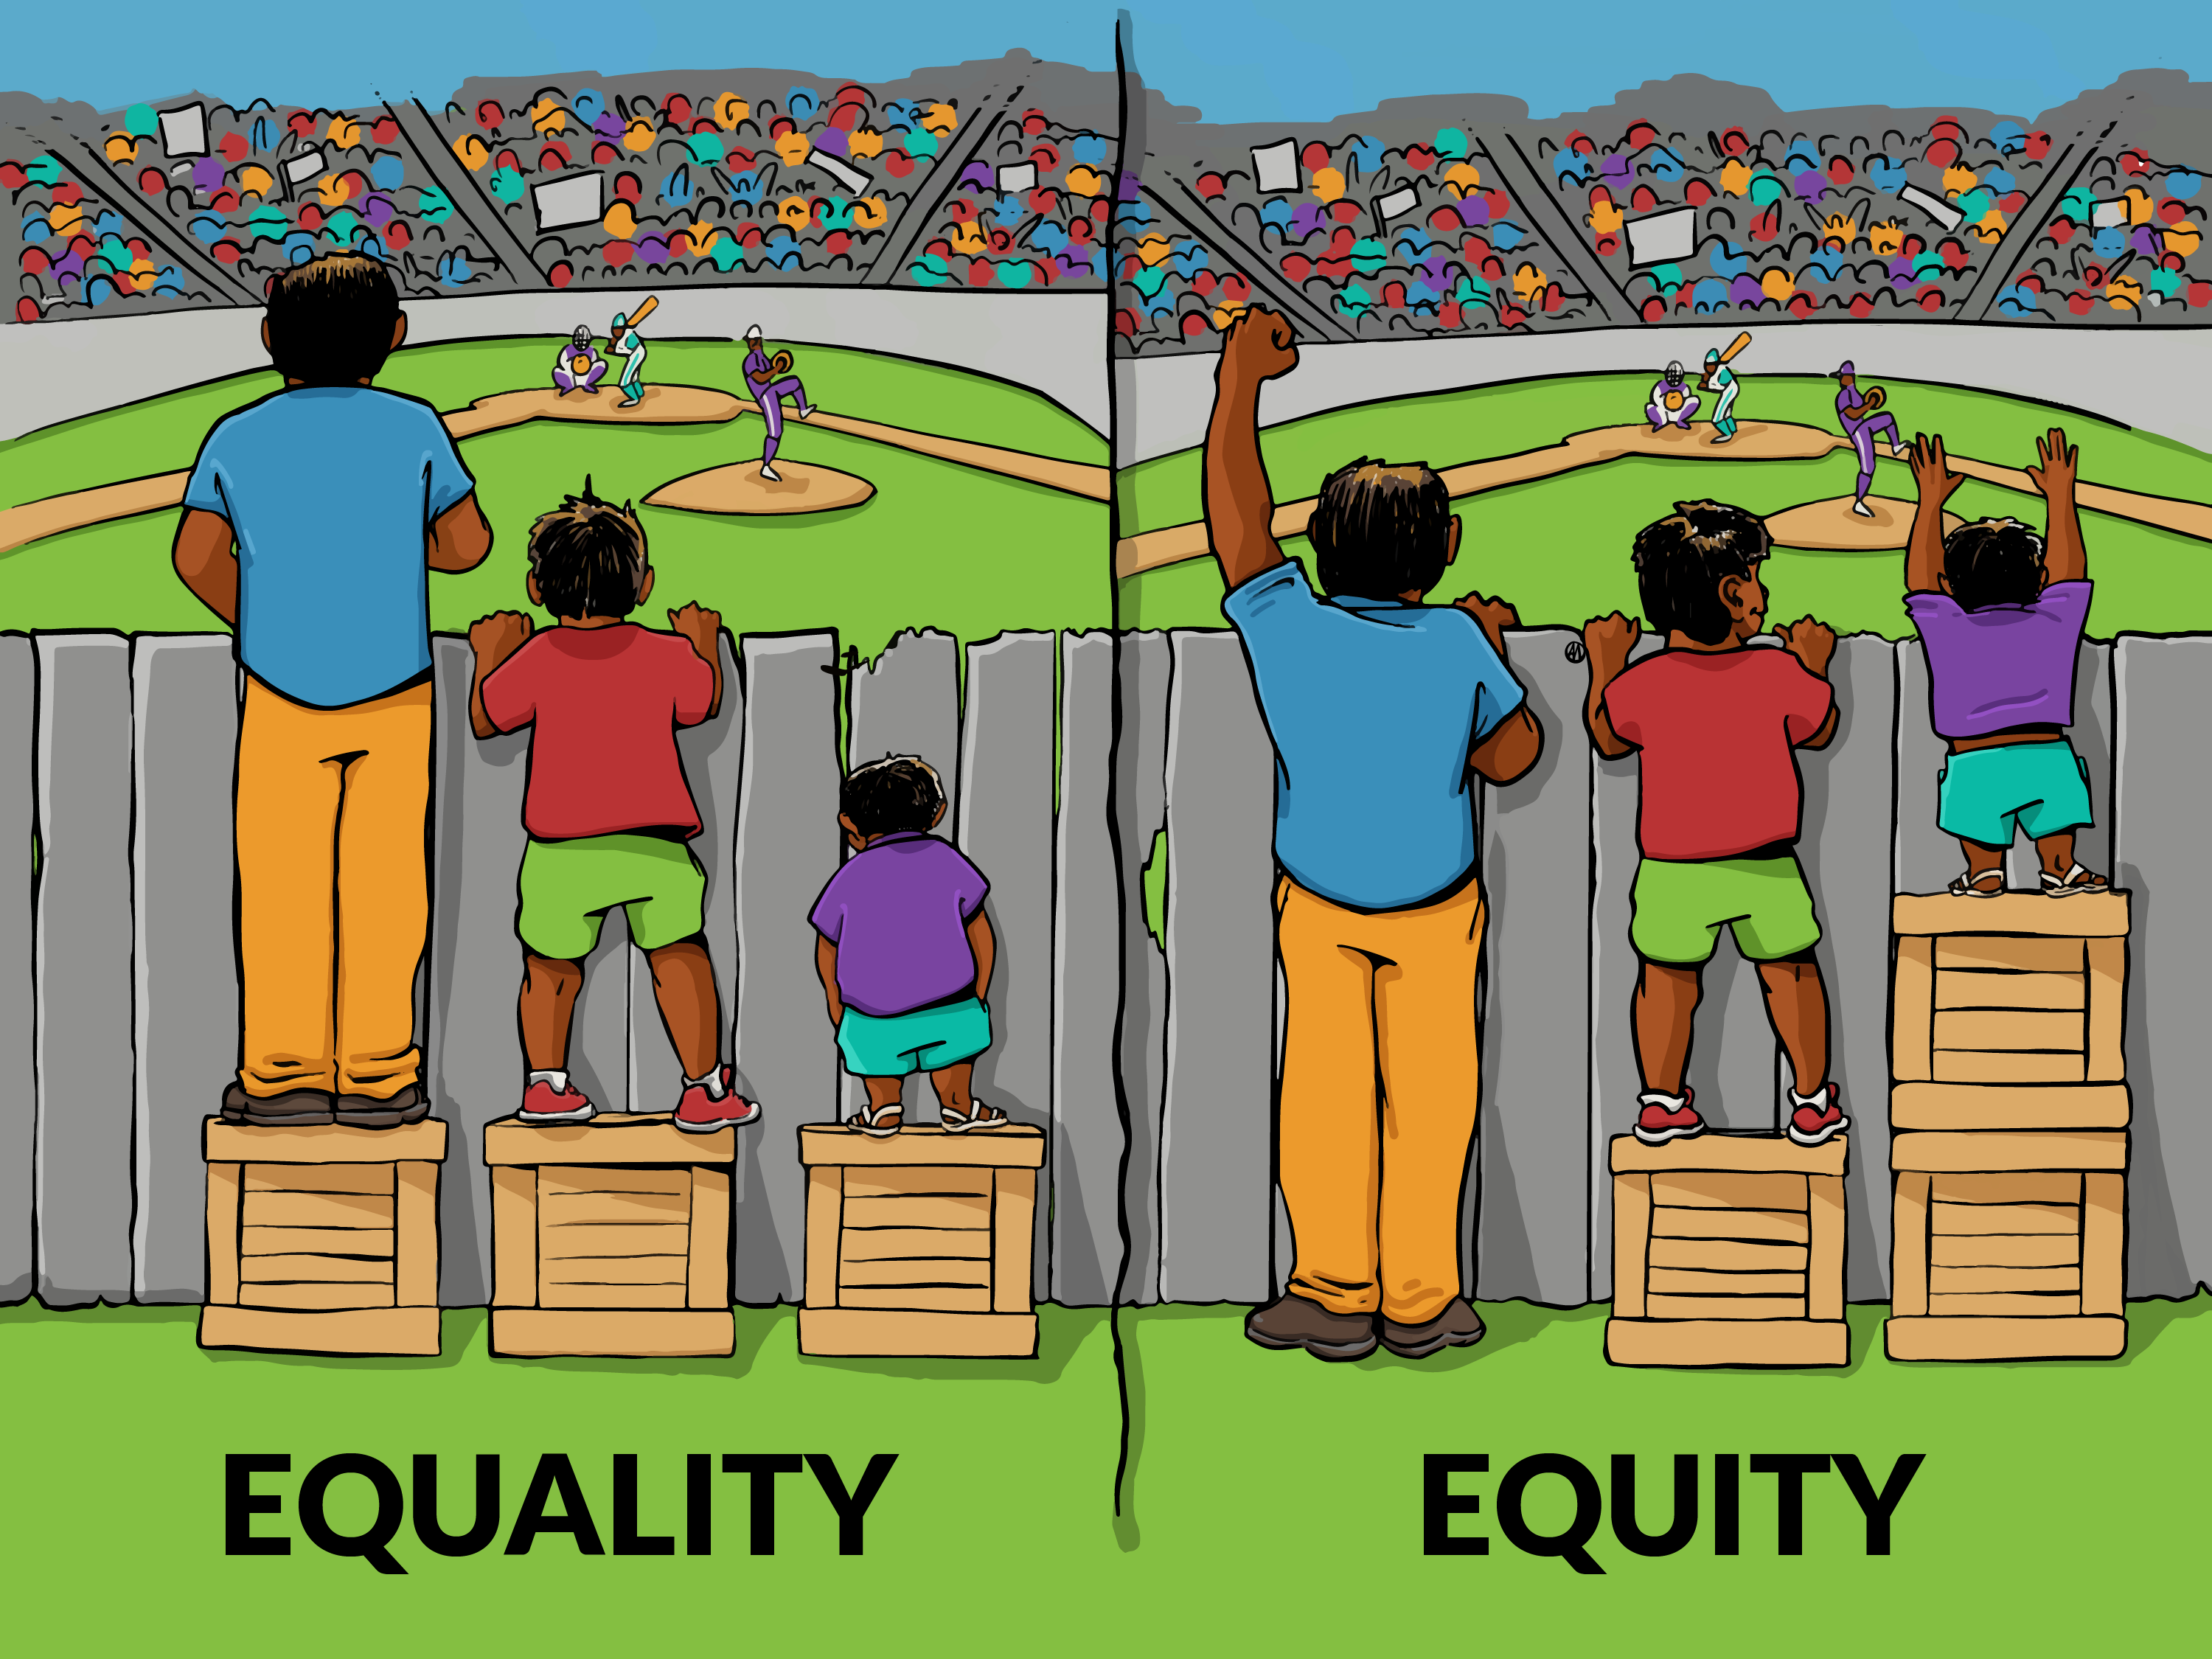 IISC_EqualityVsEquityCartoon